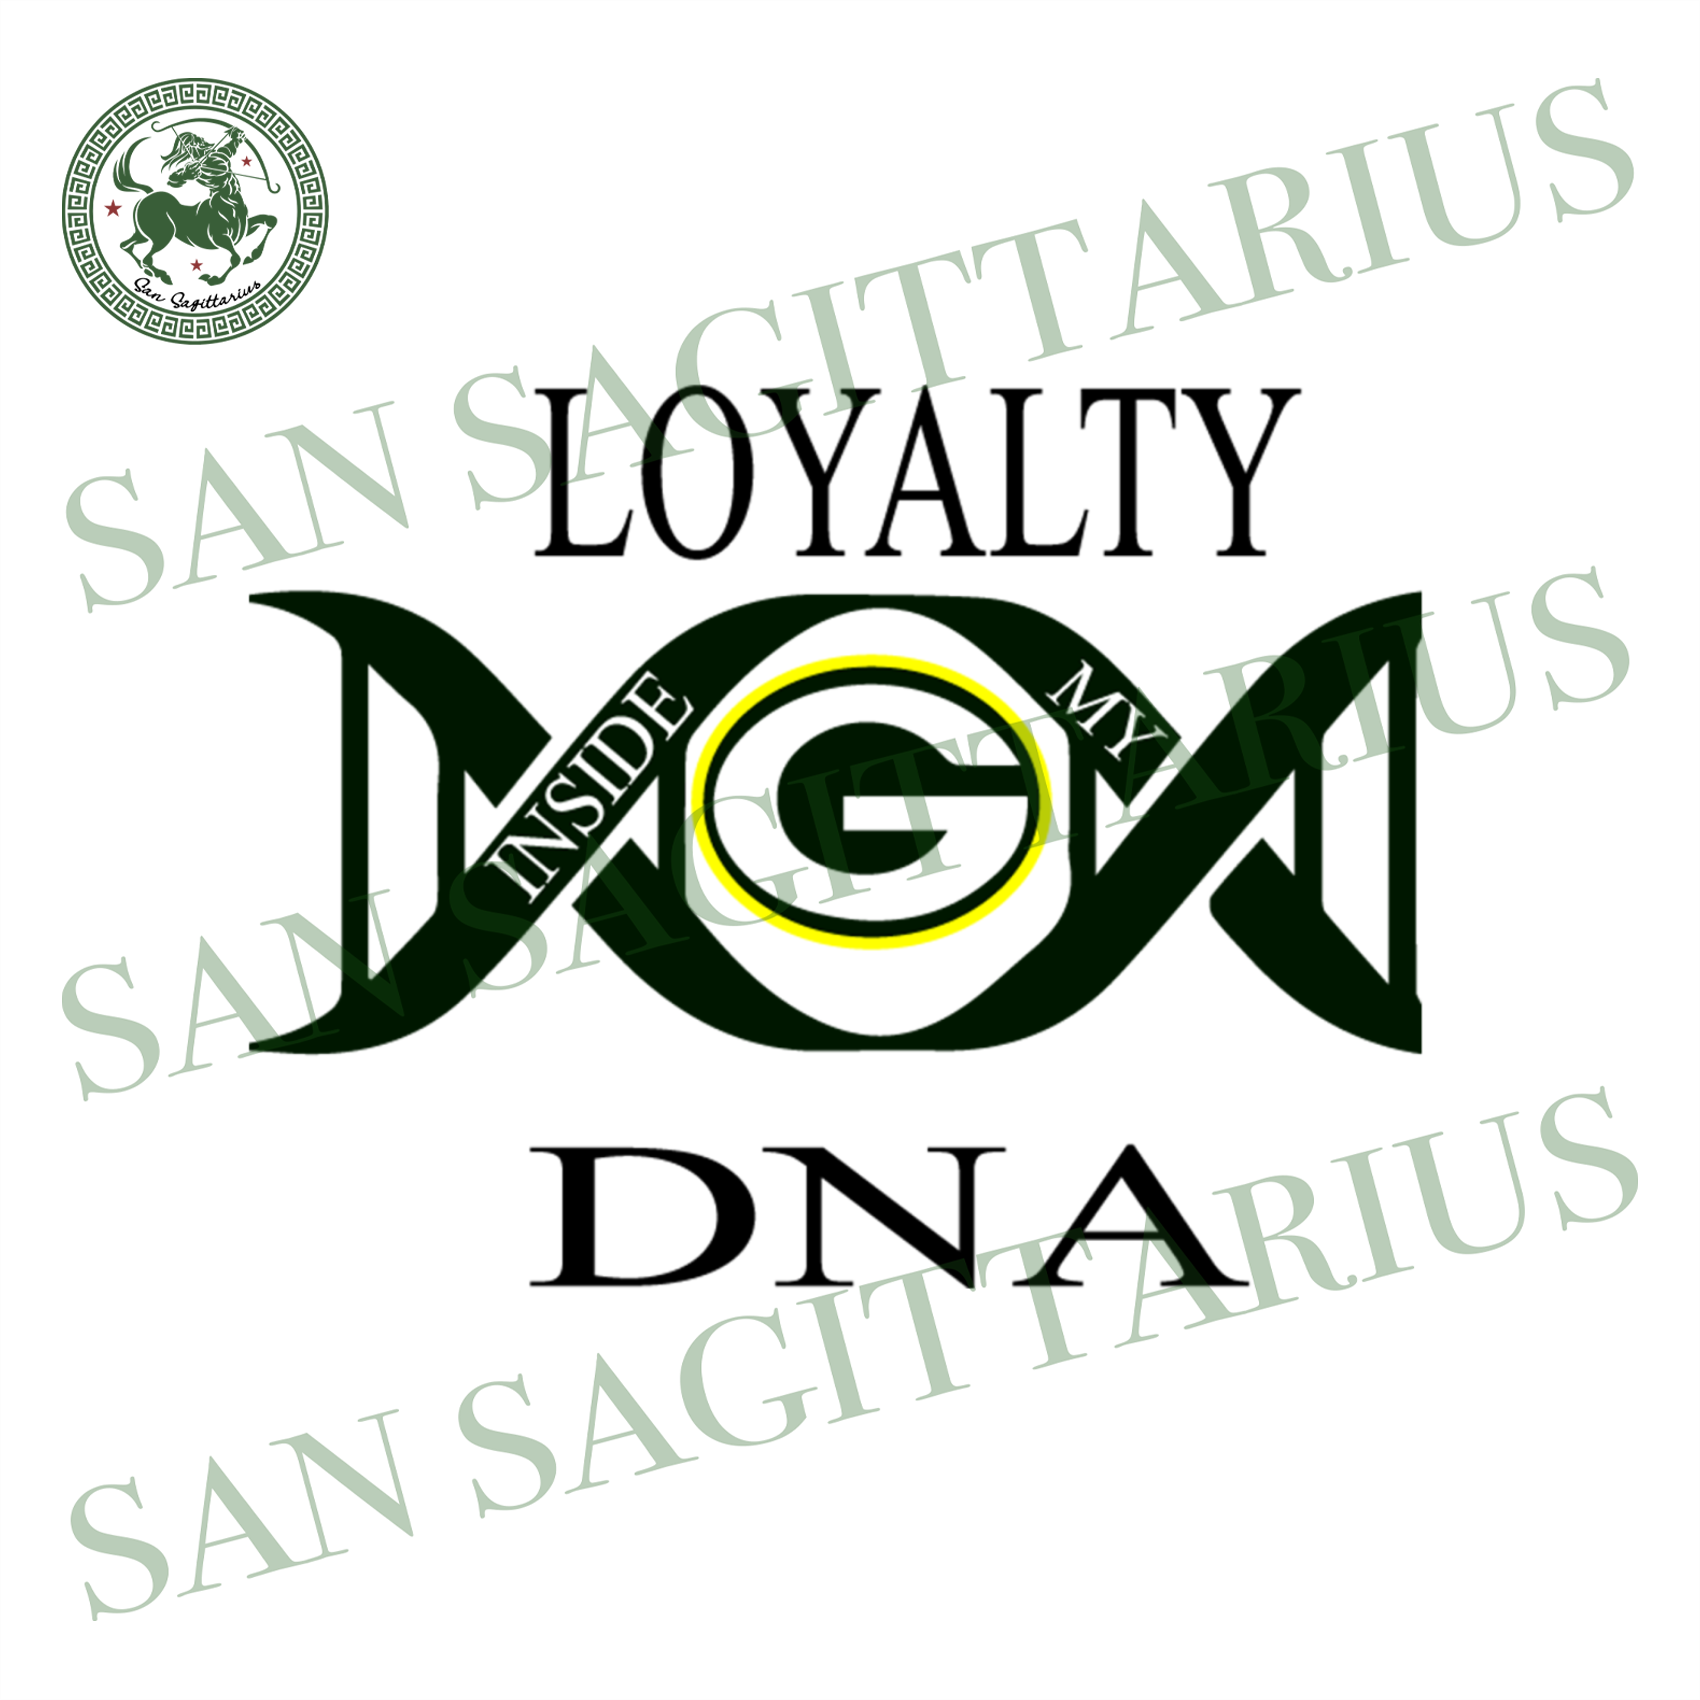 Loyalty Inside My Dna Packers Svg, Packers Logo Design, Packers Svg, Loyalty Inside, Football Quotes Svg, Football Fans Gifts, Packers Lover, Sport Mom, Packers Fans Gift, Football Mom Shirt,